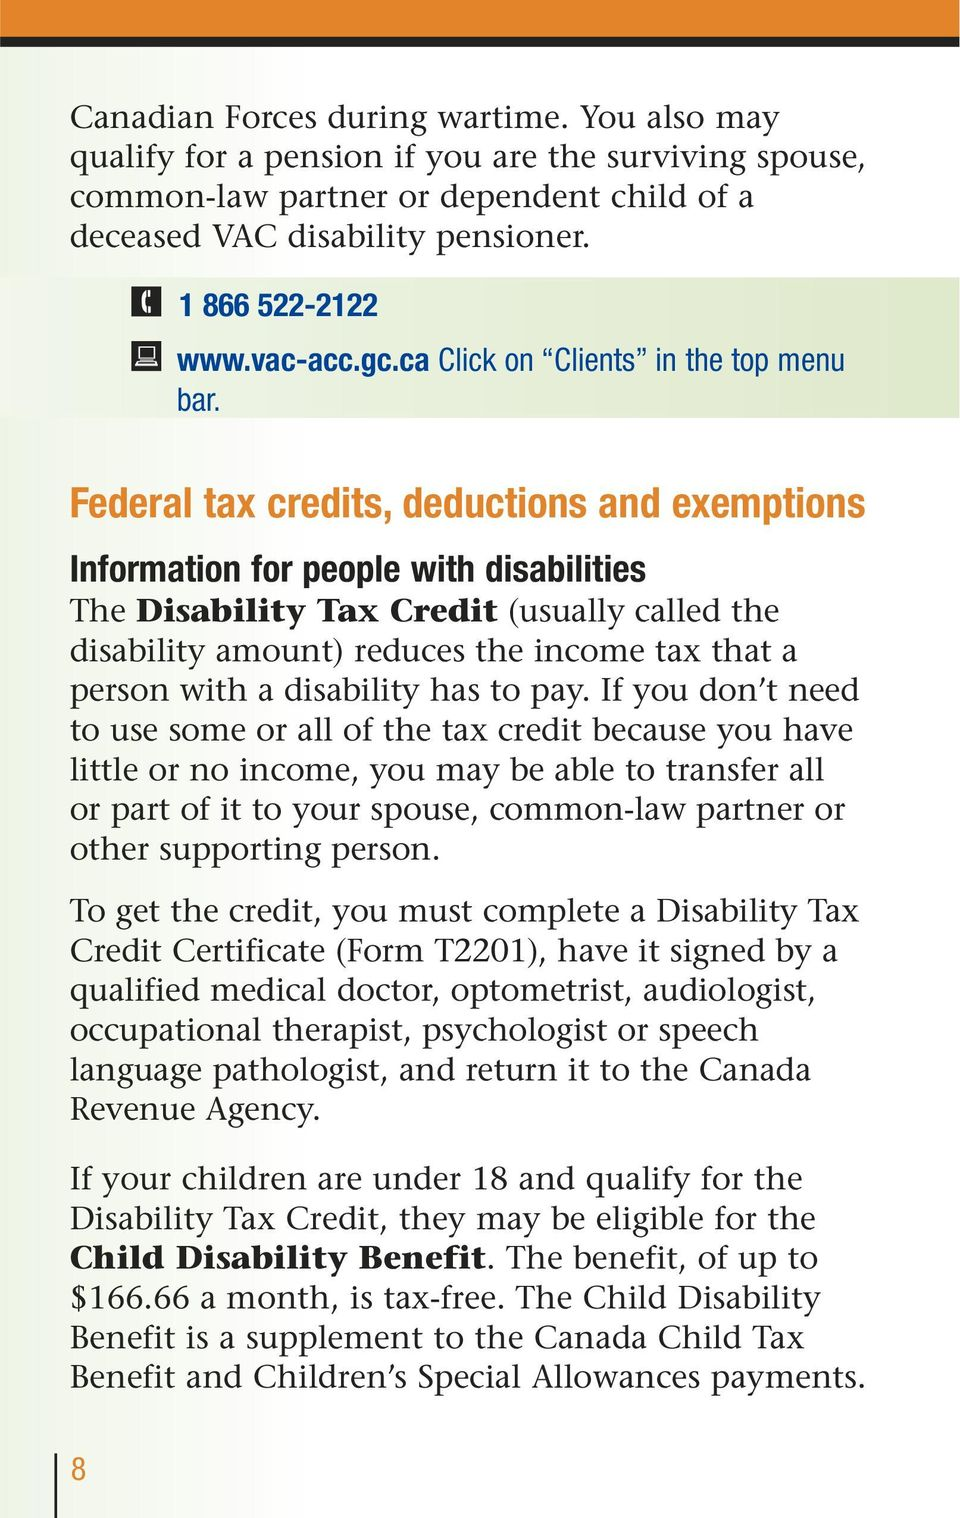 Federal tax credits, deductions and exemptions Information for people with disabilities The Disability Tax Credit (usually called the disability amount) reduces the income tax that a person with a